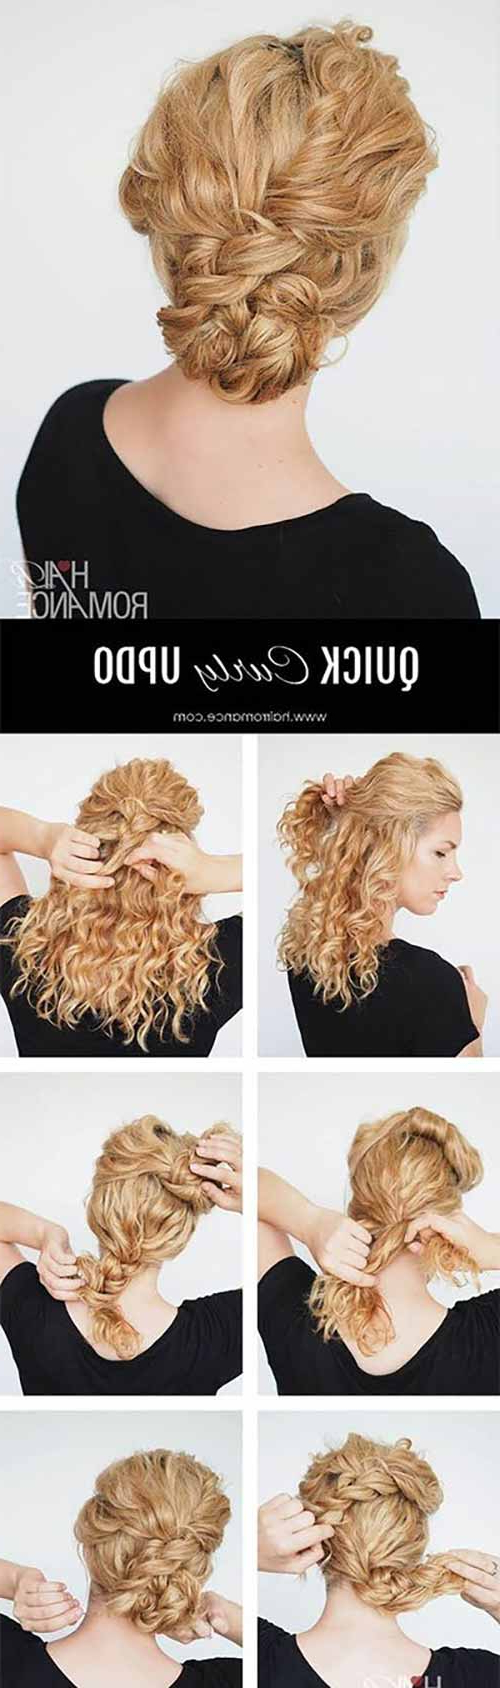 20 Incredibly Stunning Diy Updos For Curly Hair Pertaining To Most Current Elegant Messy Updo Hairstyles On Curly Hair (View 11 of 20)